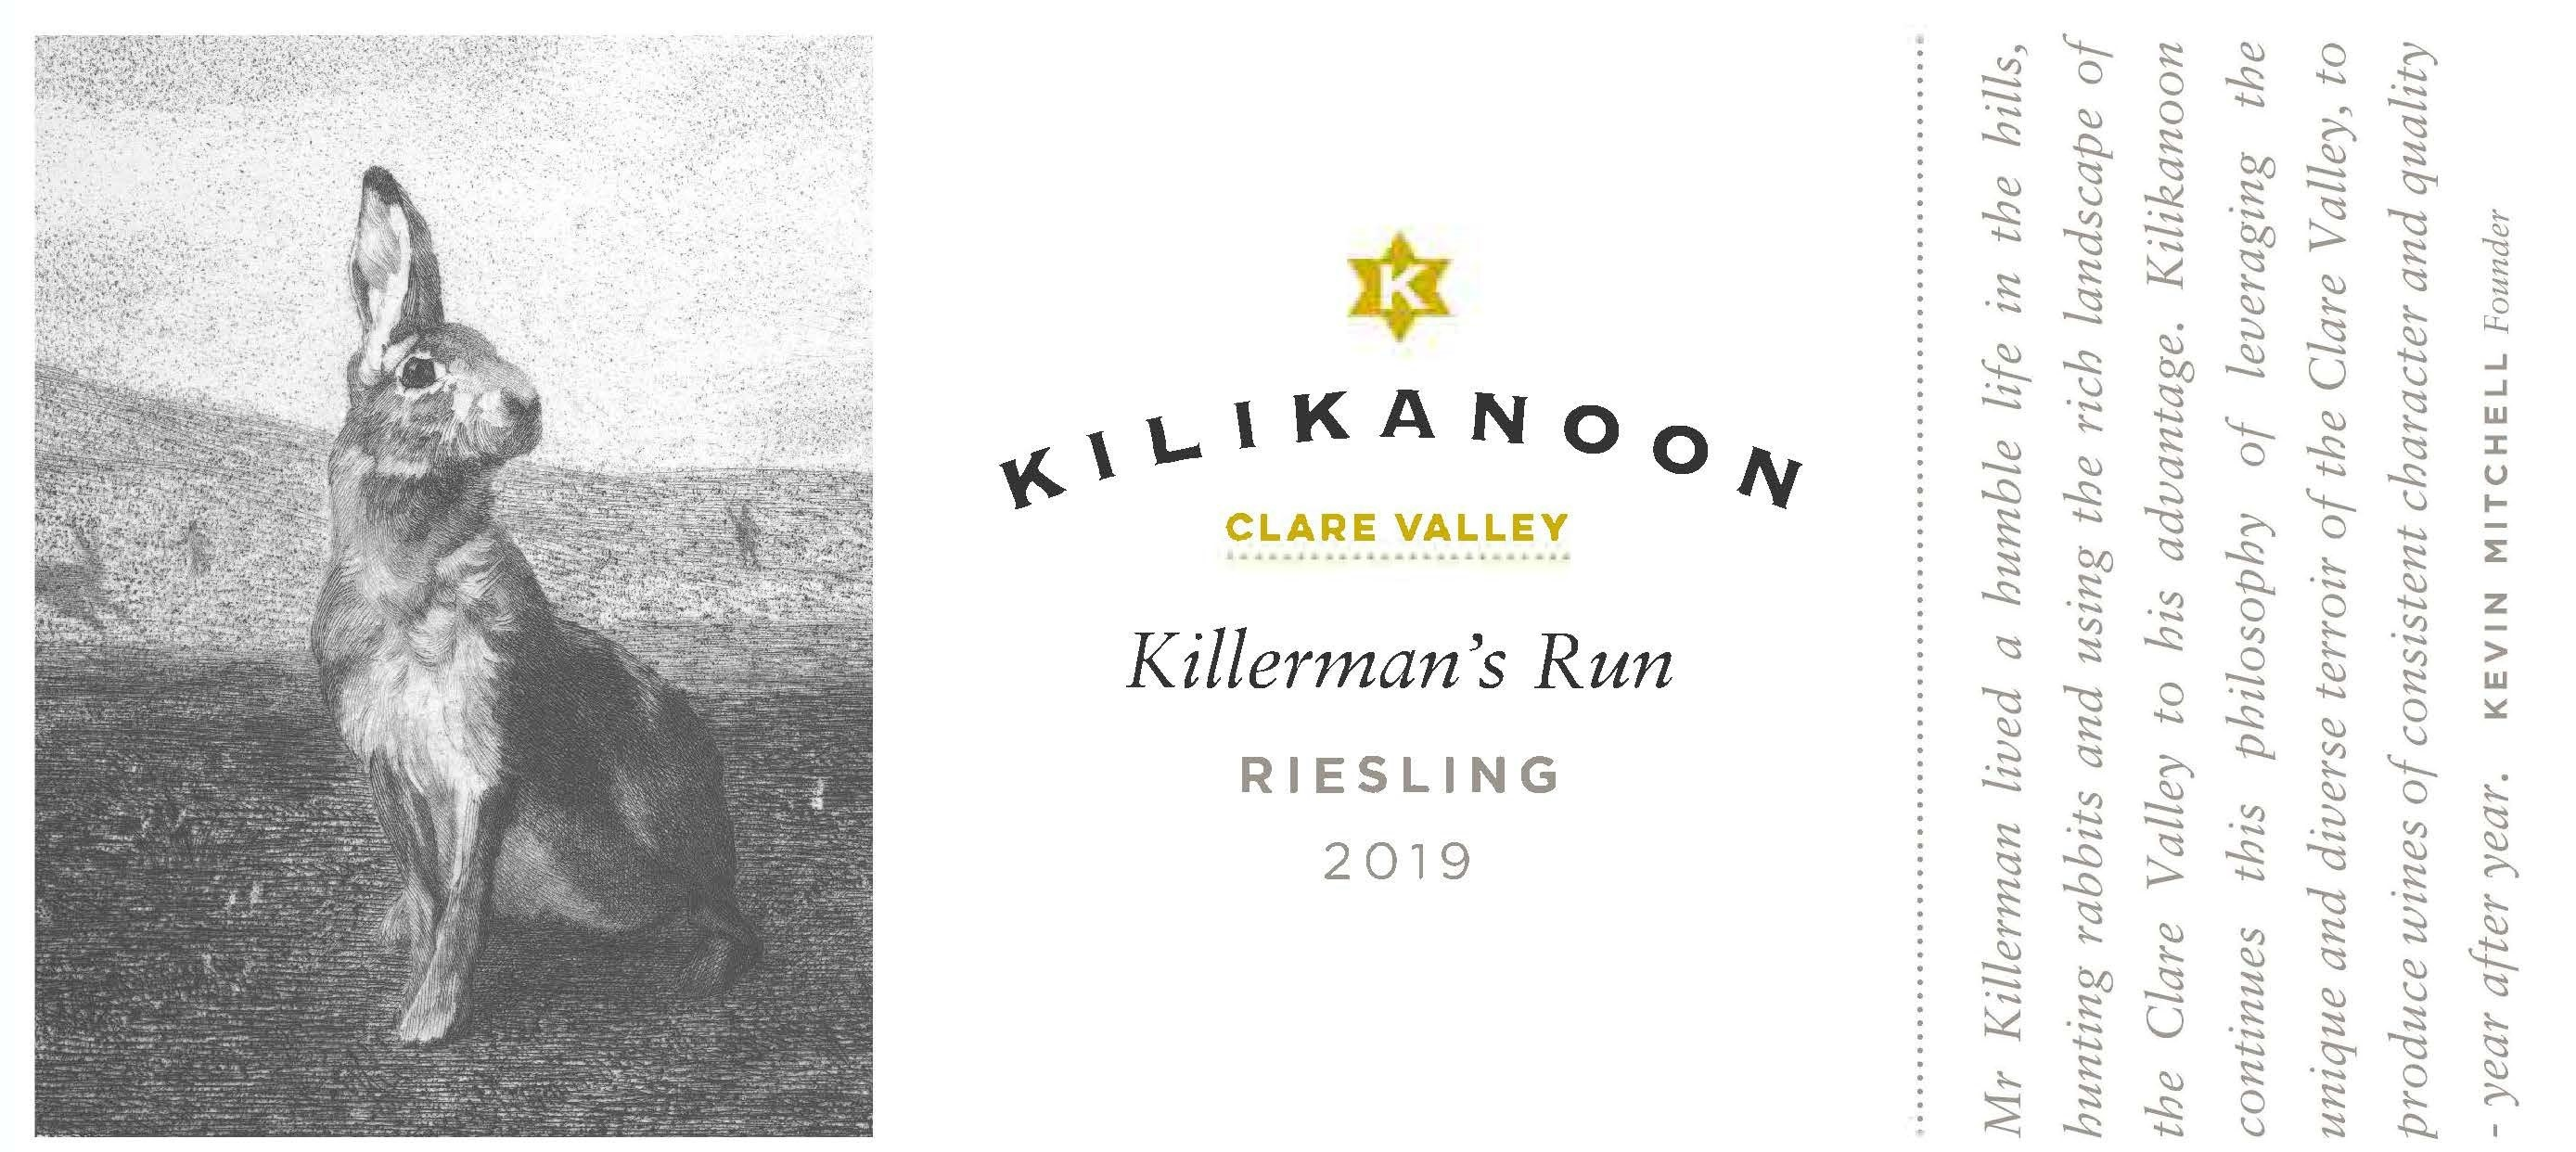 Kilikanoon Killerman's Run Riesling 2017 MAIN